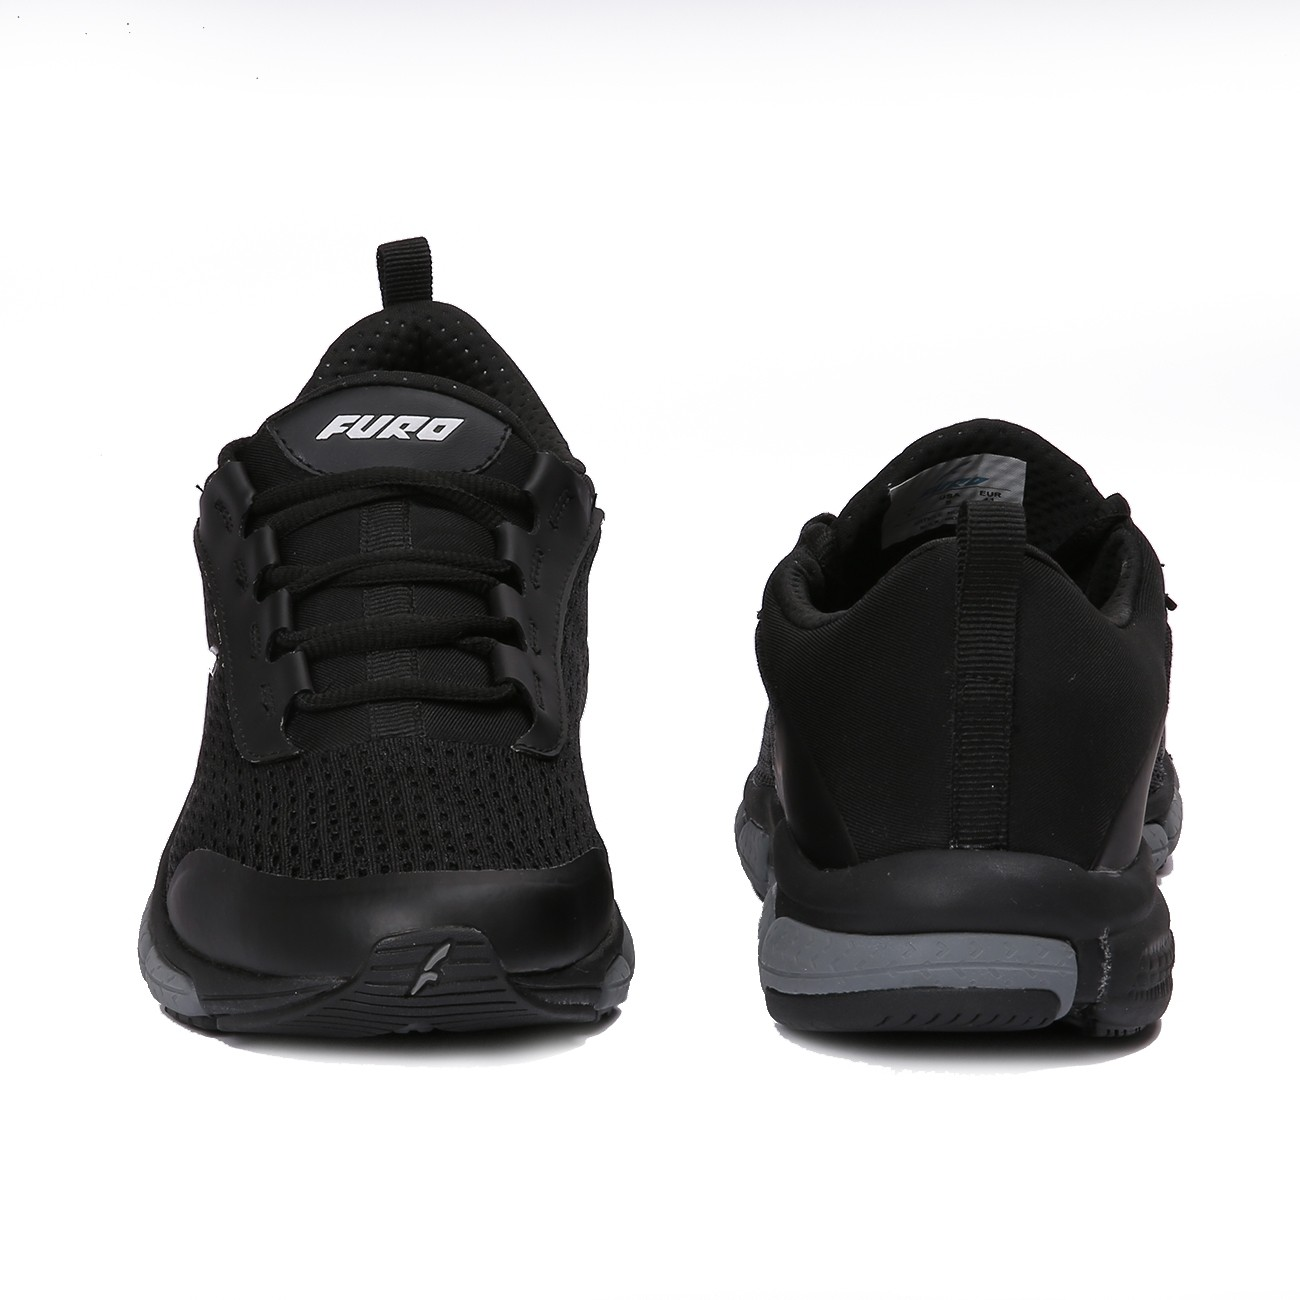 FURO R1018 | Running Shoes for Men